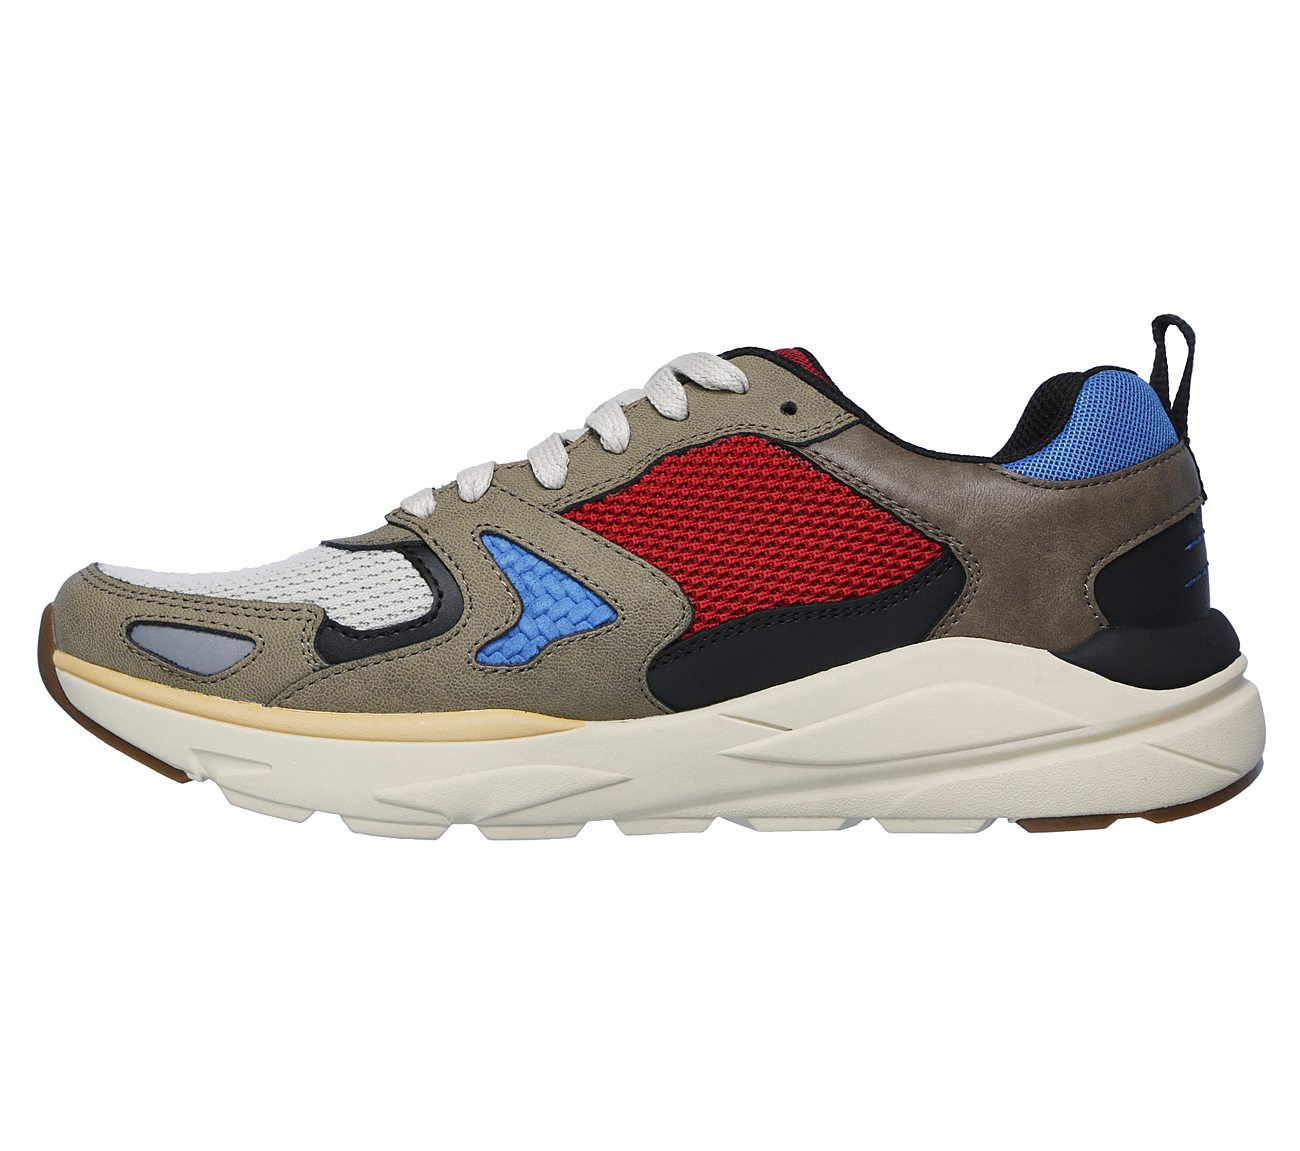 0591632ac47 Buy SKECHERS Relaxed Fit: Verrado - Brogen USA Casuals Shoes only $70.00